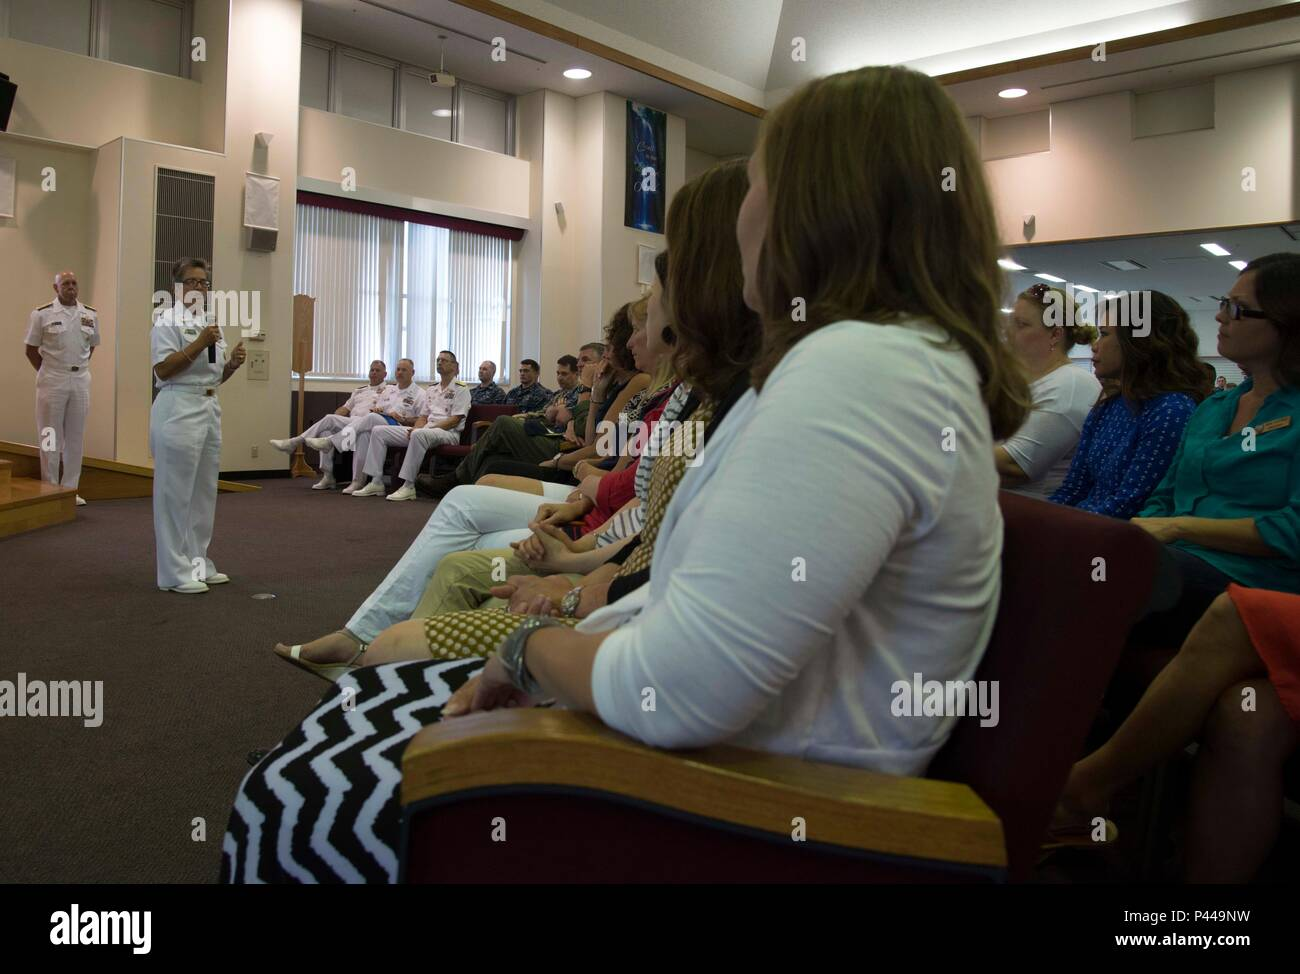 SASEBO, Japan (June 13, 2016) U.S. Pacific Fleet Master Chief Susan Whitman speaks with service members and civilians during a town hall held at Commander, U.S.  Fleet Activities Sasebo, June 13, 2016. Commander, U.S. Pacific Fleet Adm. Scott H. Swift was the primary speaker at the event. Swift visited Sasebo to meet with area servicemembers and civilians to to strengthen relations with Japan Self-Defense Force personnel as the two nations work toward a safe, secure and prosperous region. (U.S. Navy photo by Mass Communication Specialist 1st Class David R. Krigbaum/Released) - Stock Image